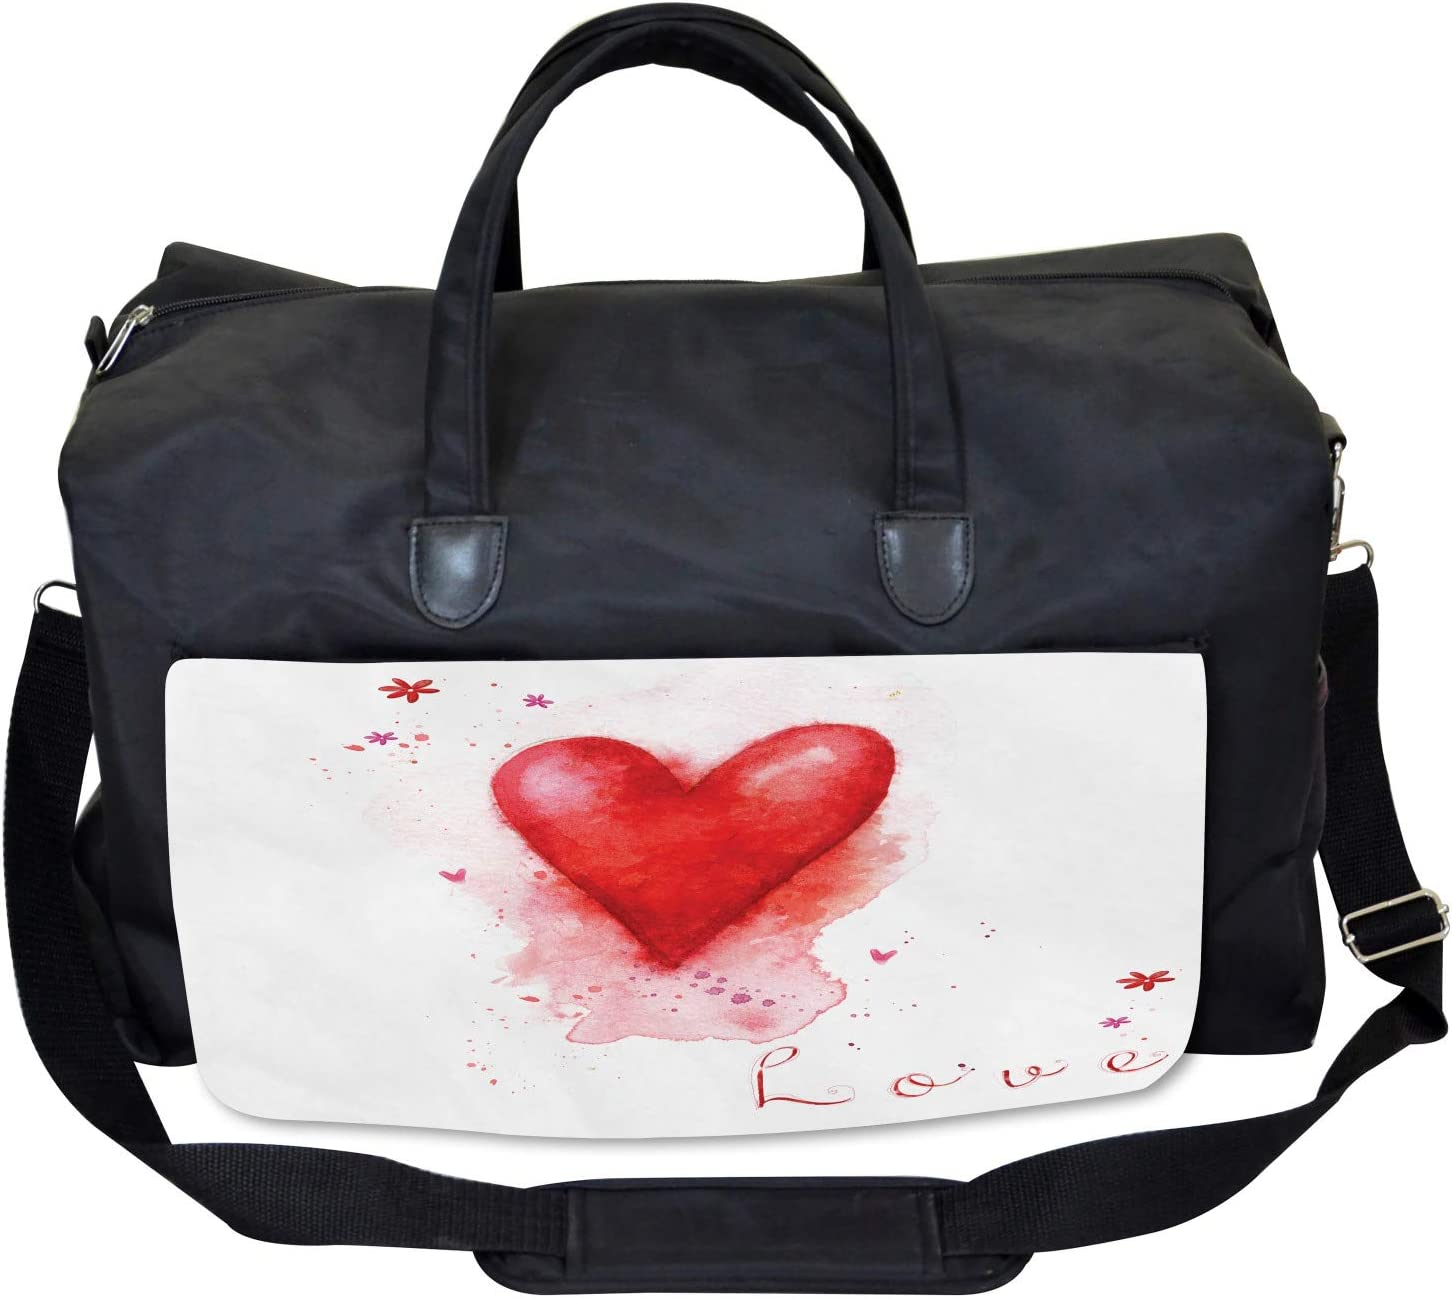 Watercolor Effect Heart Ambesonne Love Gym Bag Large Weekender Carry-on